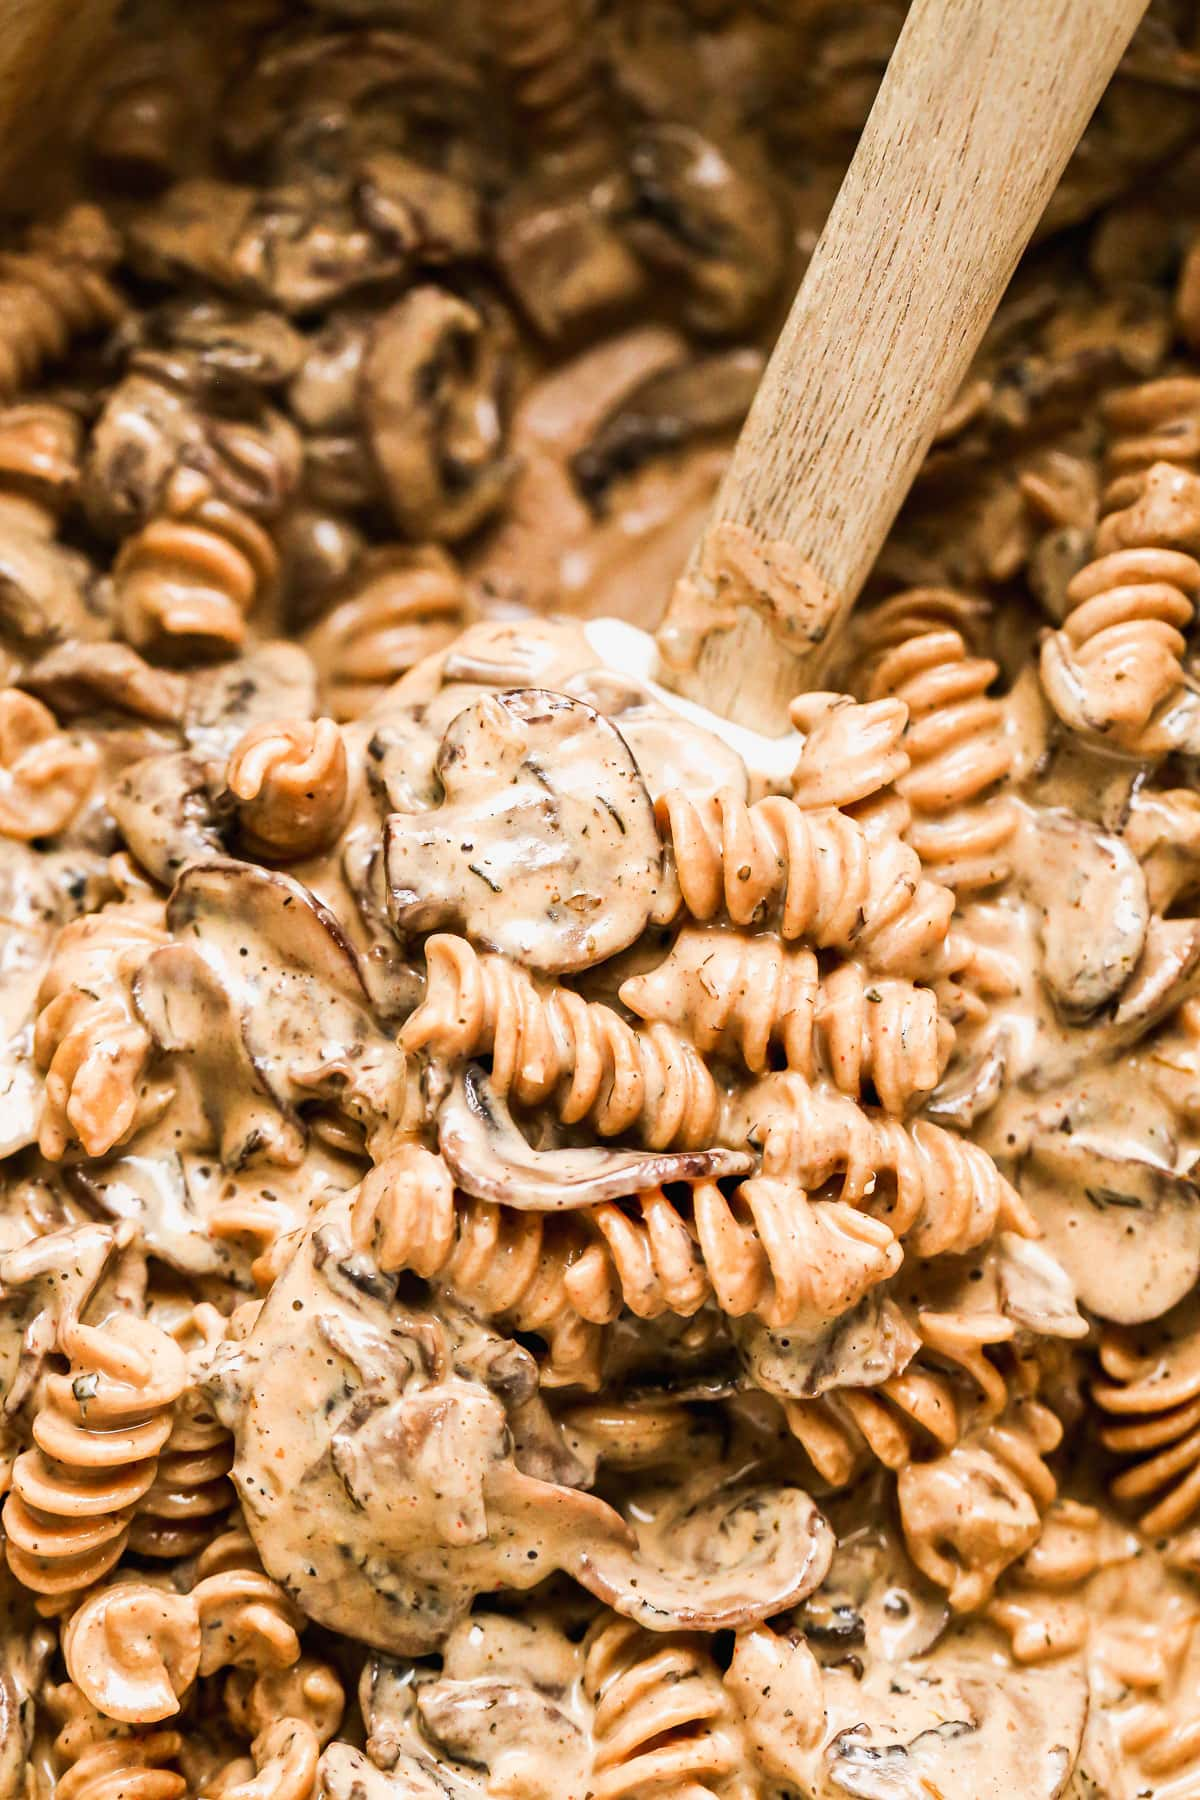 Creamy stroganoff with mushrooms